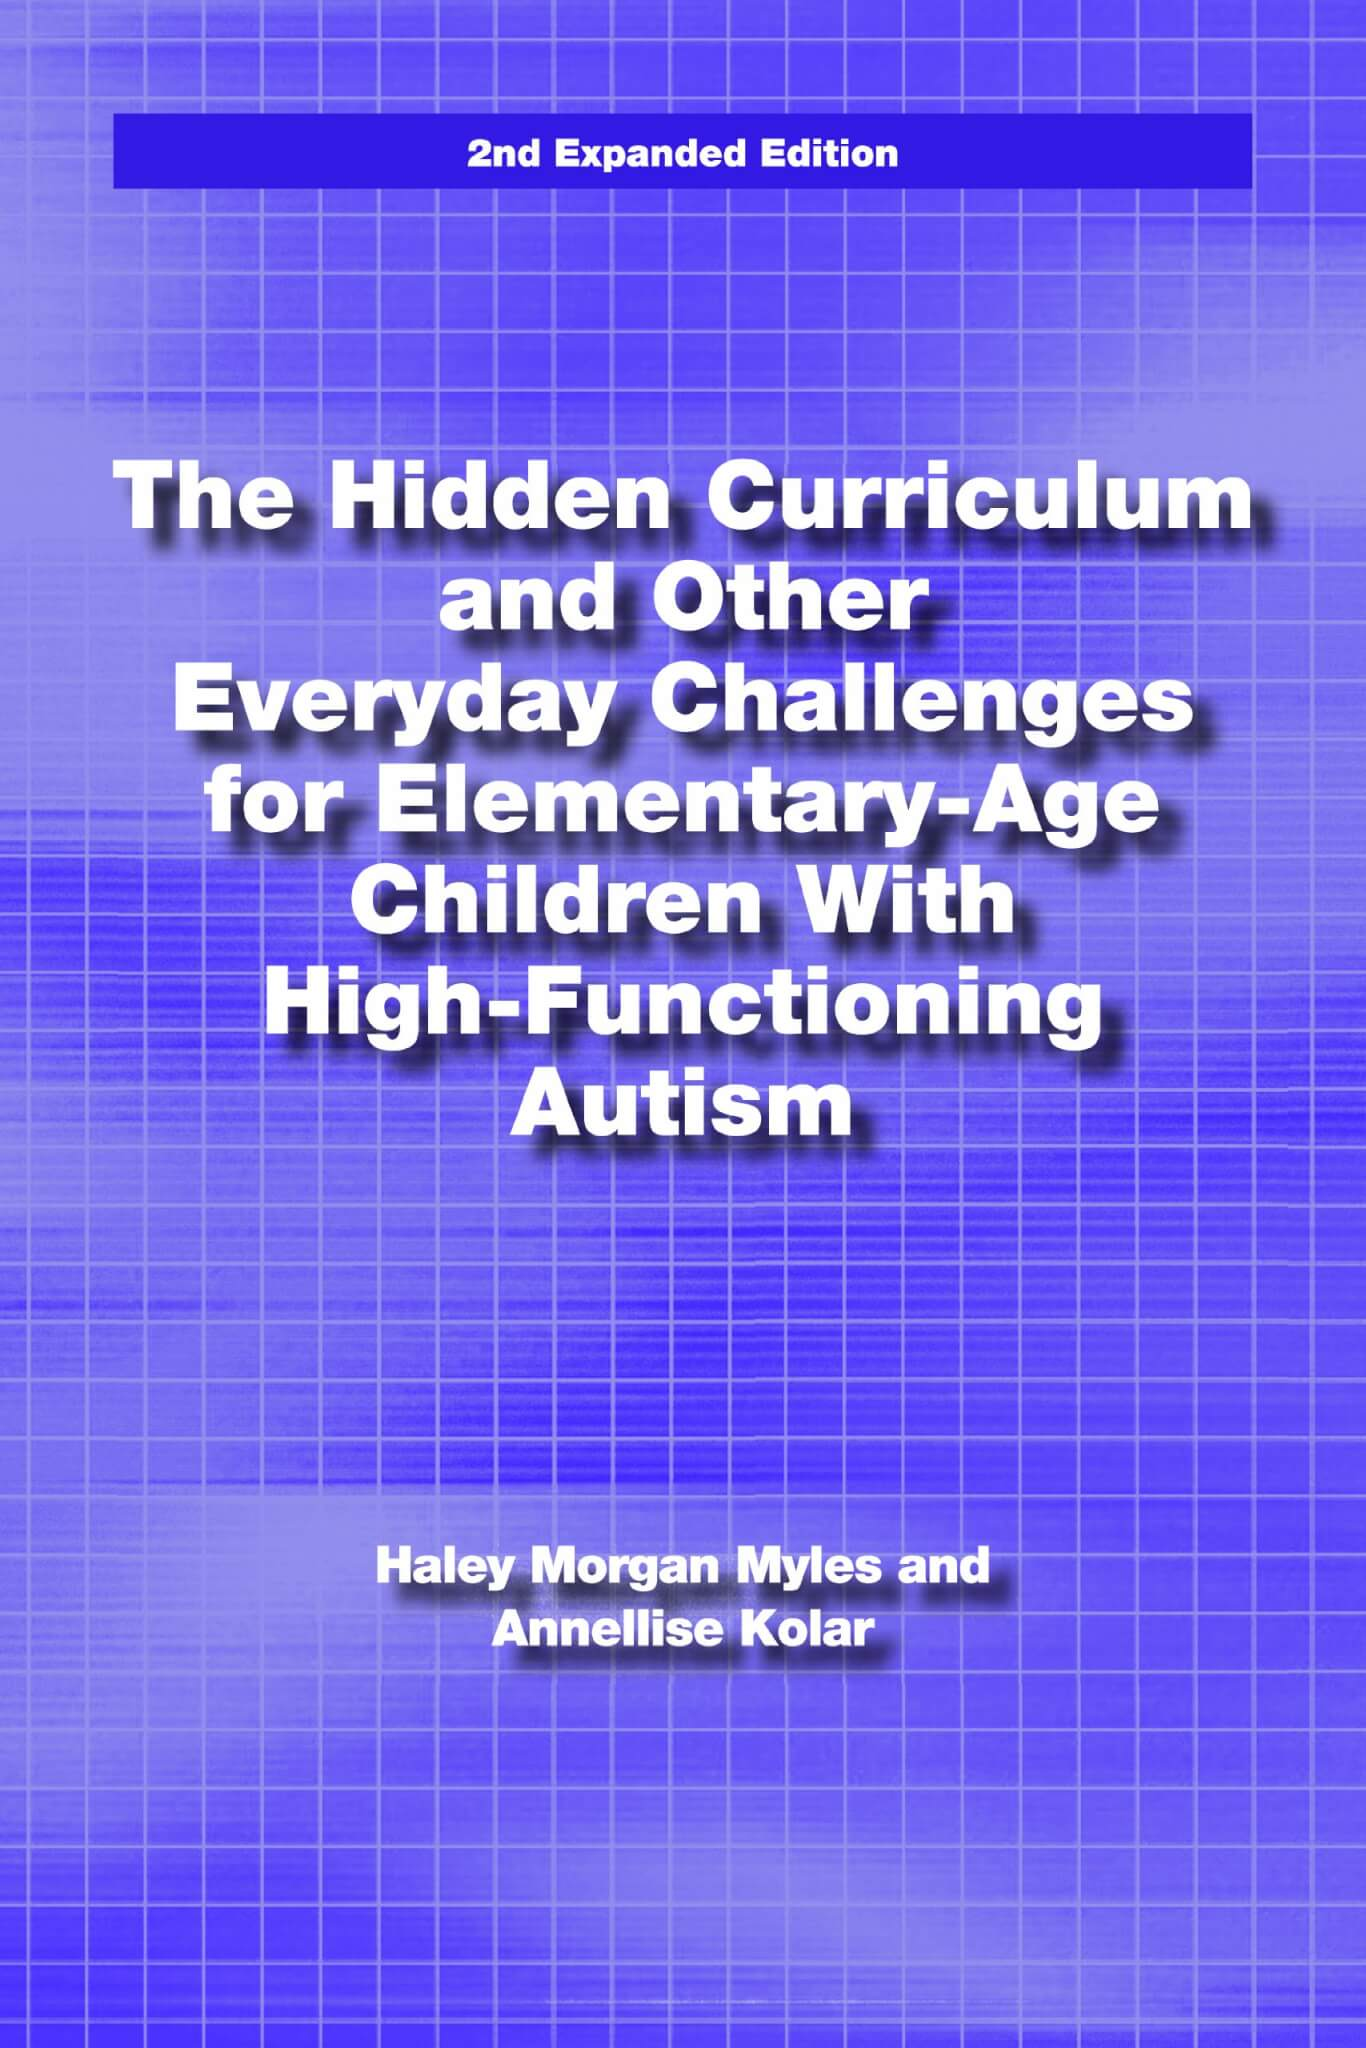 The Hidden Curriculum and Other Everyday Challenges for Elementary